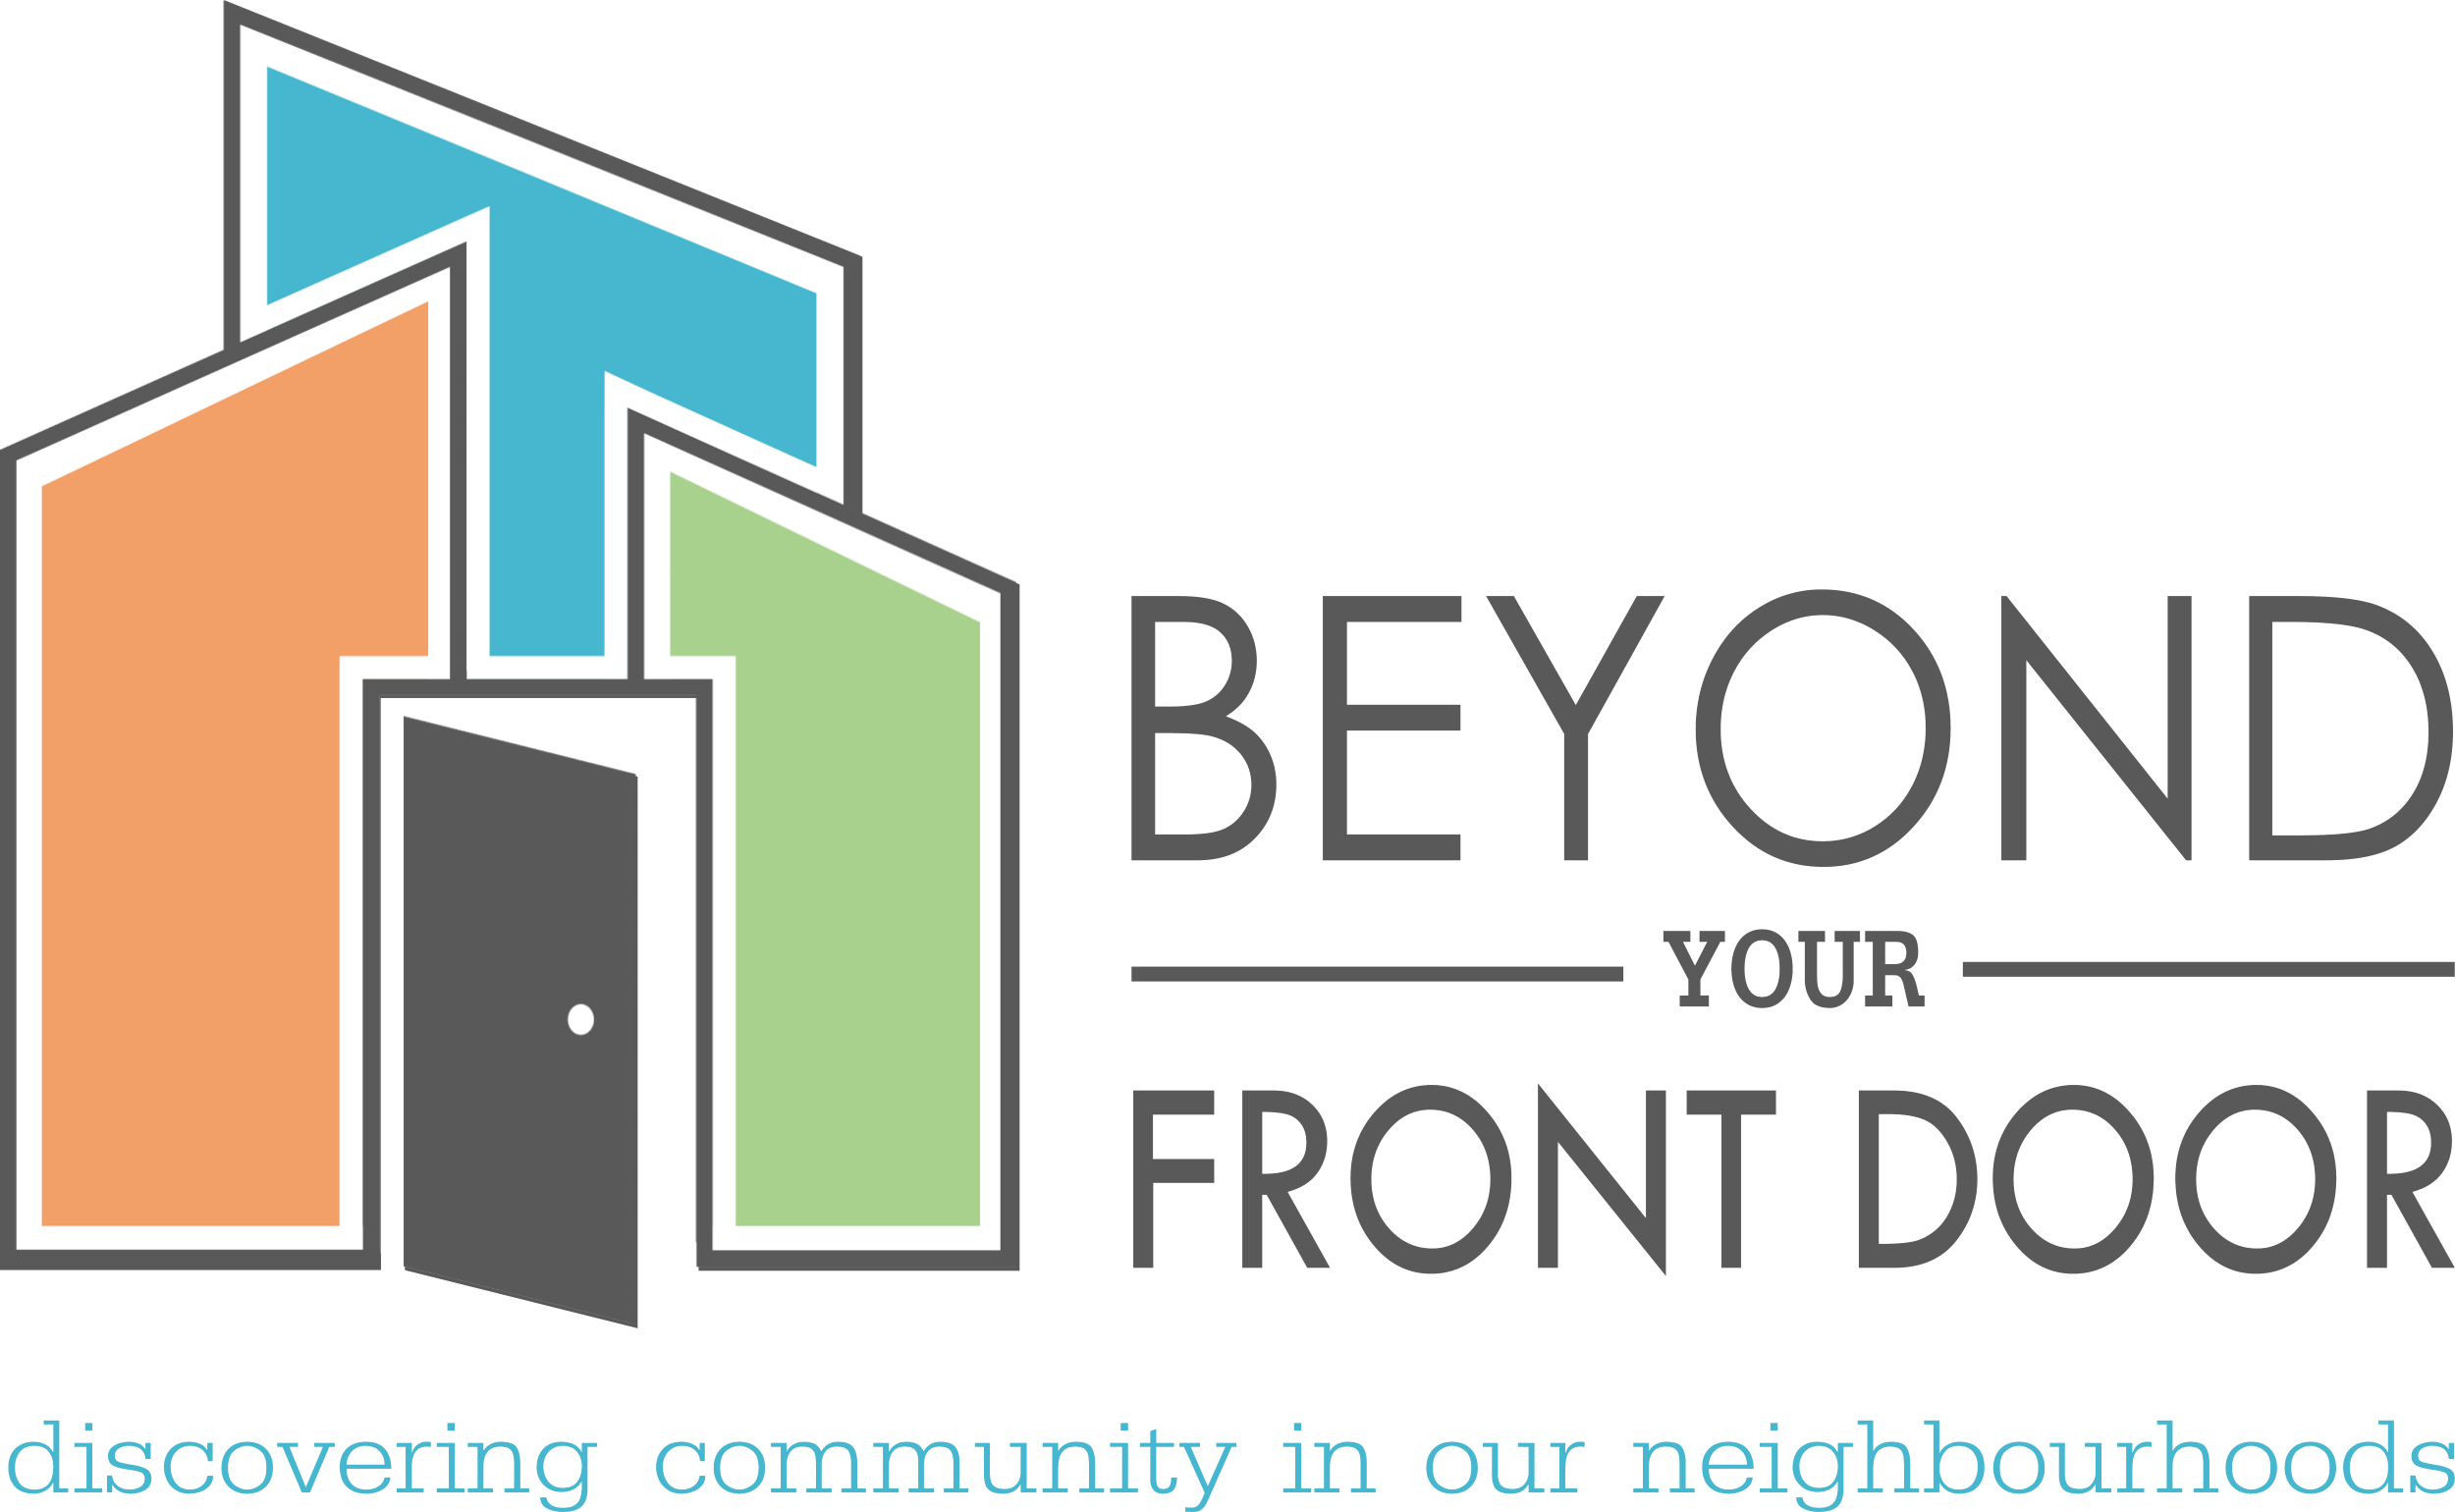 BYFD_logo_2.0.png